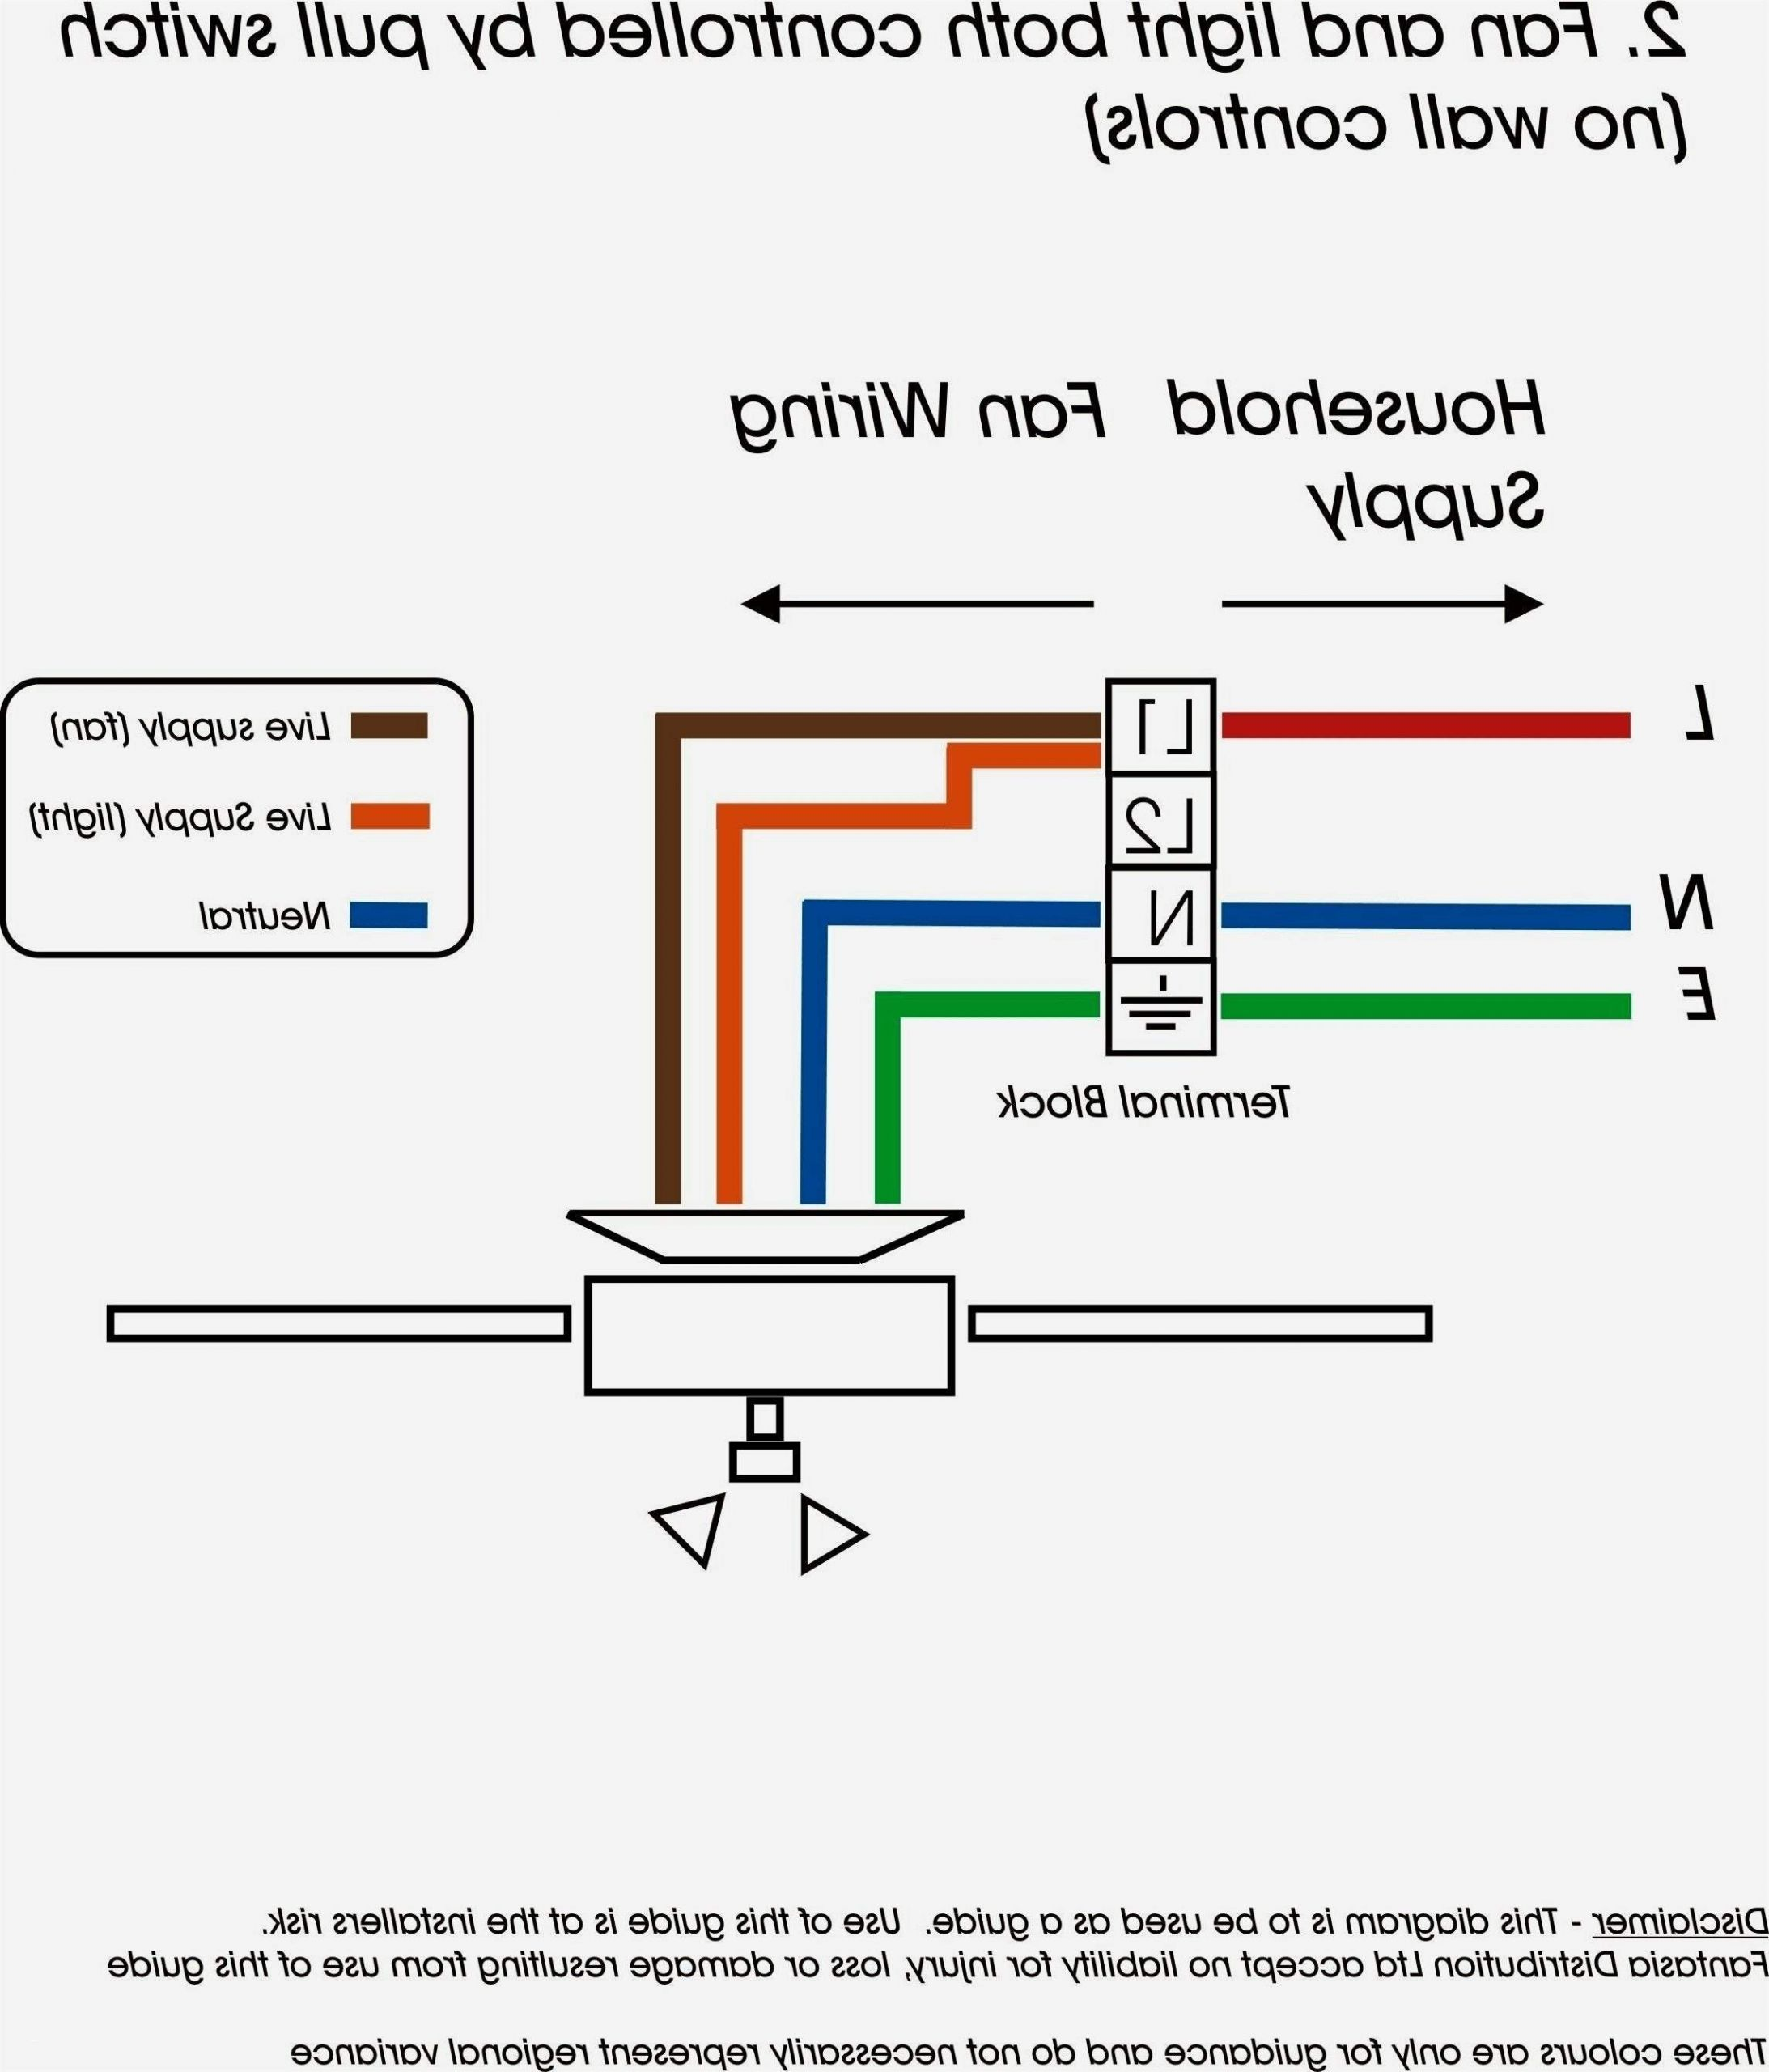 aircraft wiring diagram software aircraft wiring diagram software aircraft wiring diagram legend refrence free electrical diagram software inspirational wiring 11a